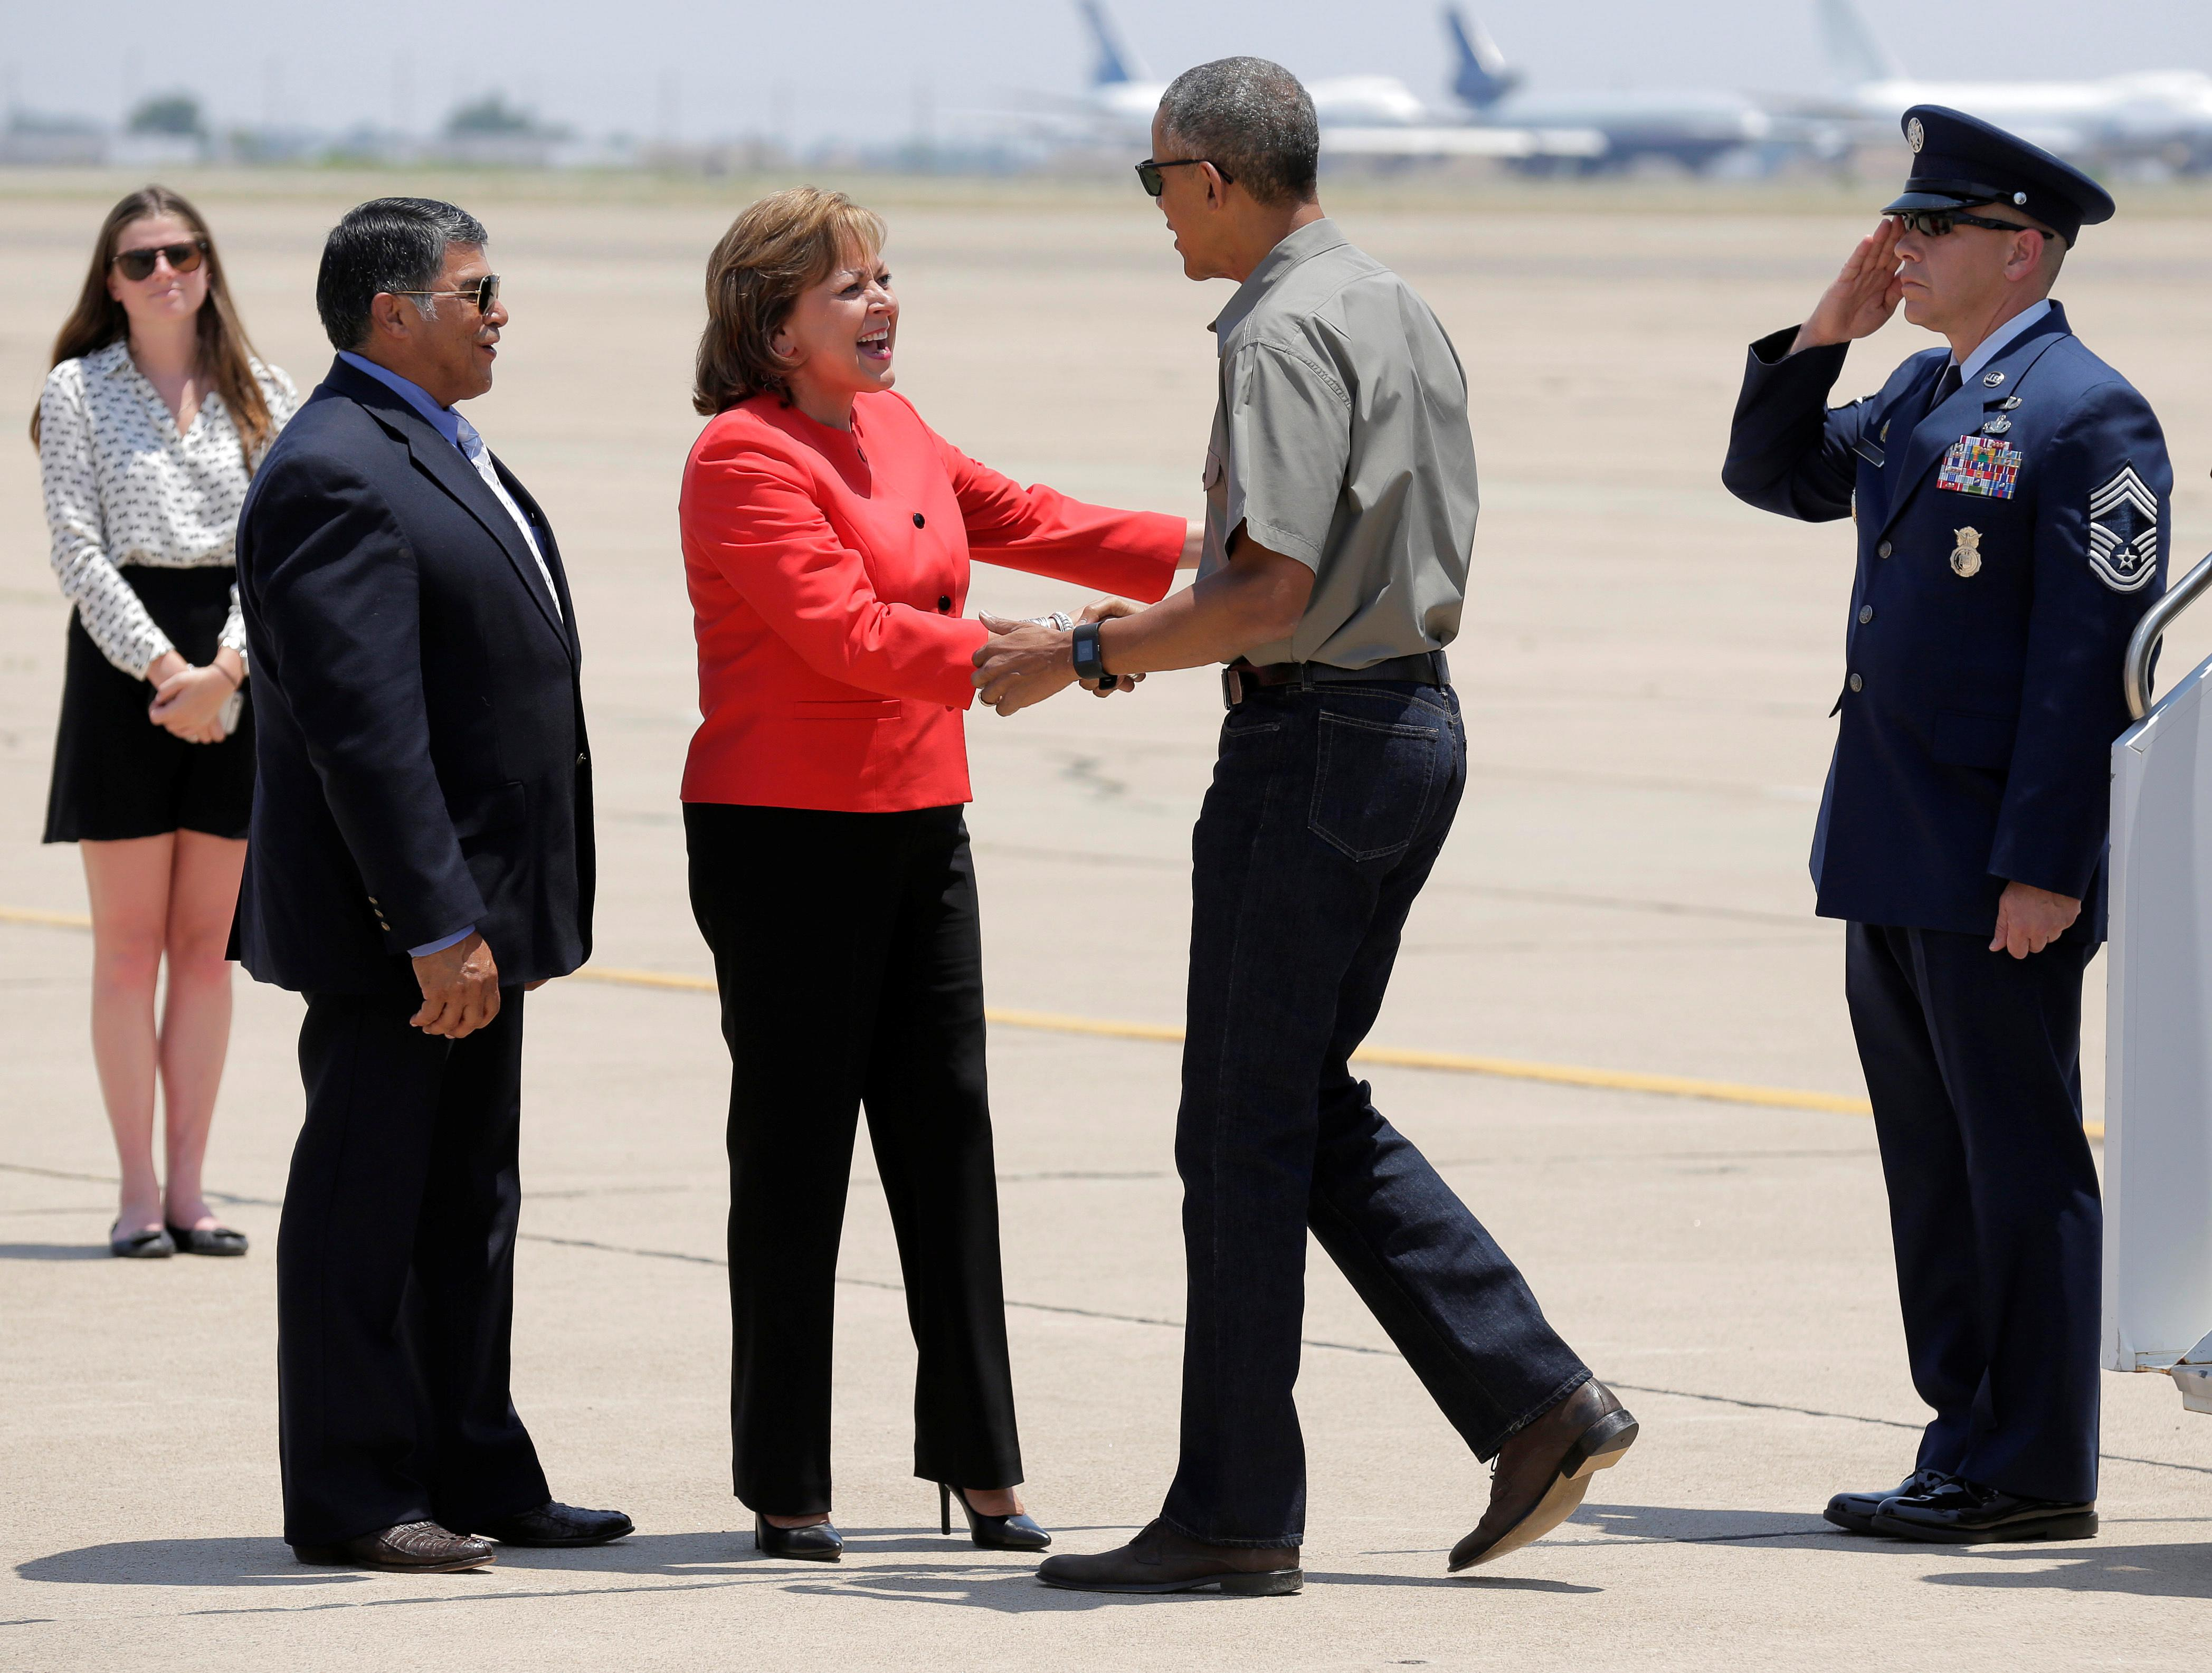 U.S. President Barack Obama is greeted by Governor of New Mexico Susana Martinez as he walks from Air Force One in Roswell, New Mexico, U.S., June 17, 2016.